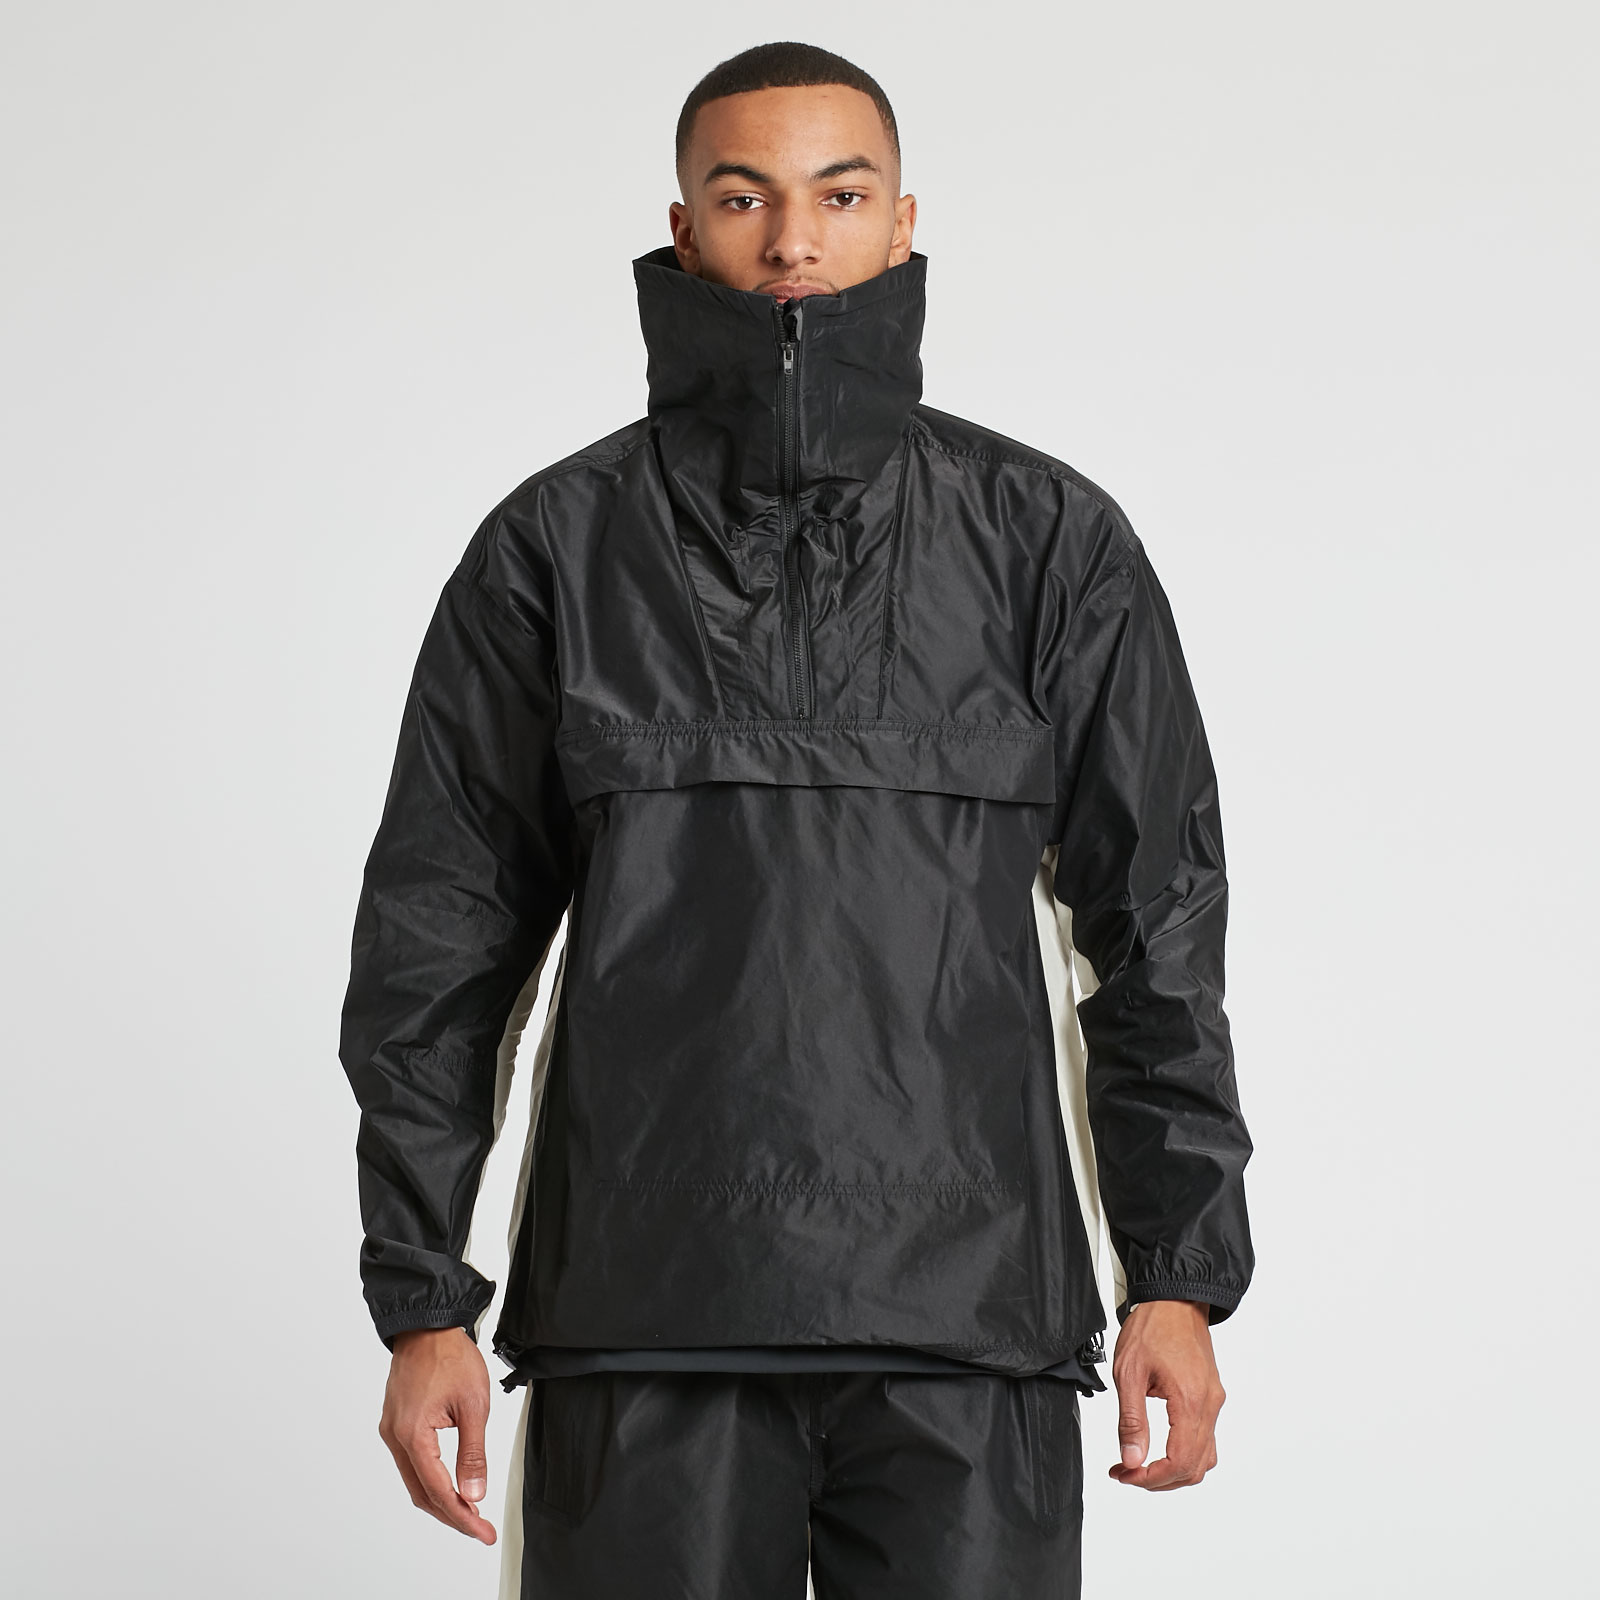 adidas Carbon Windrunner - Br1779